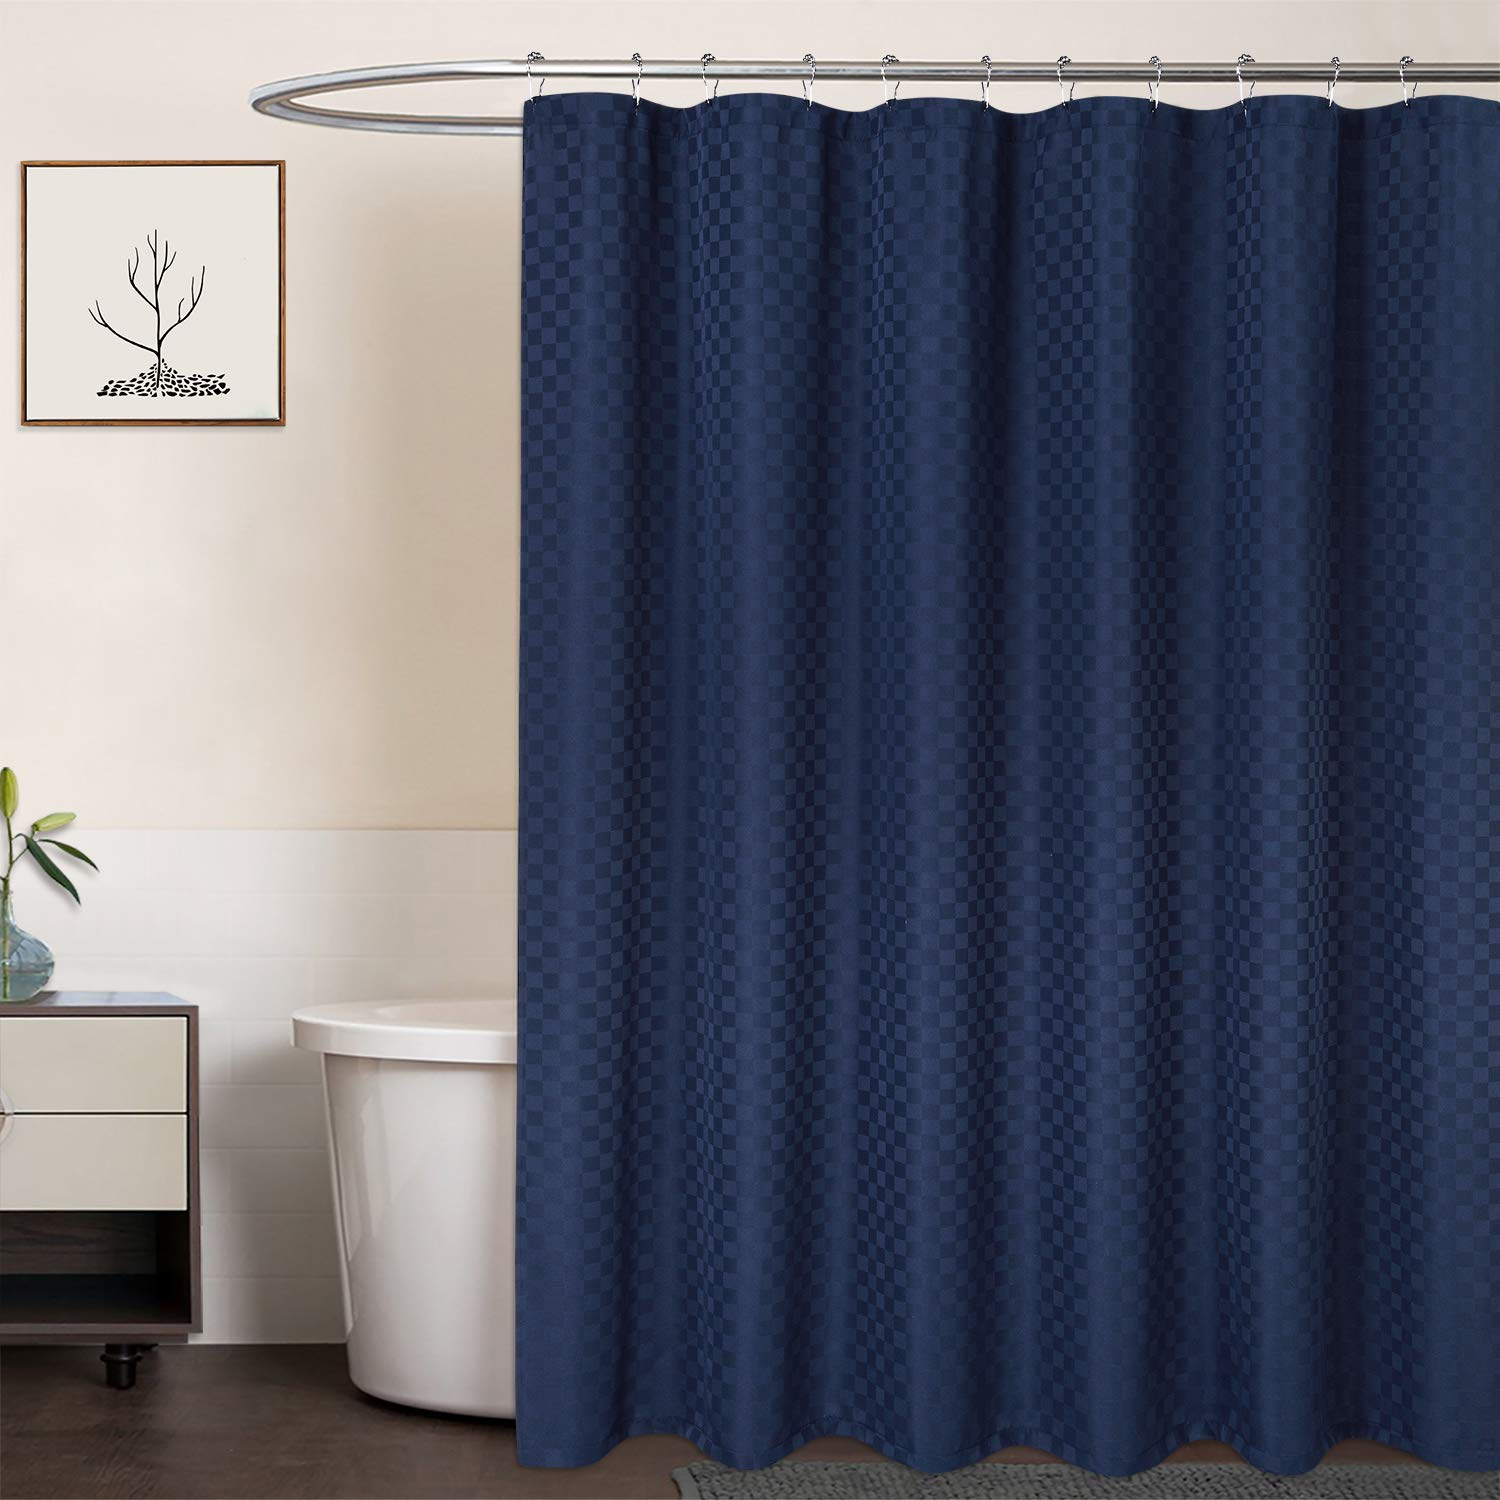 caromio navy blue shower curtain 190gsm heavy duty thick hotel luxury fabric shower curtain for bathroom washable navy blue 72x78 inches